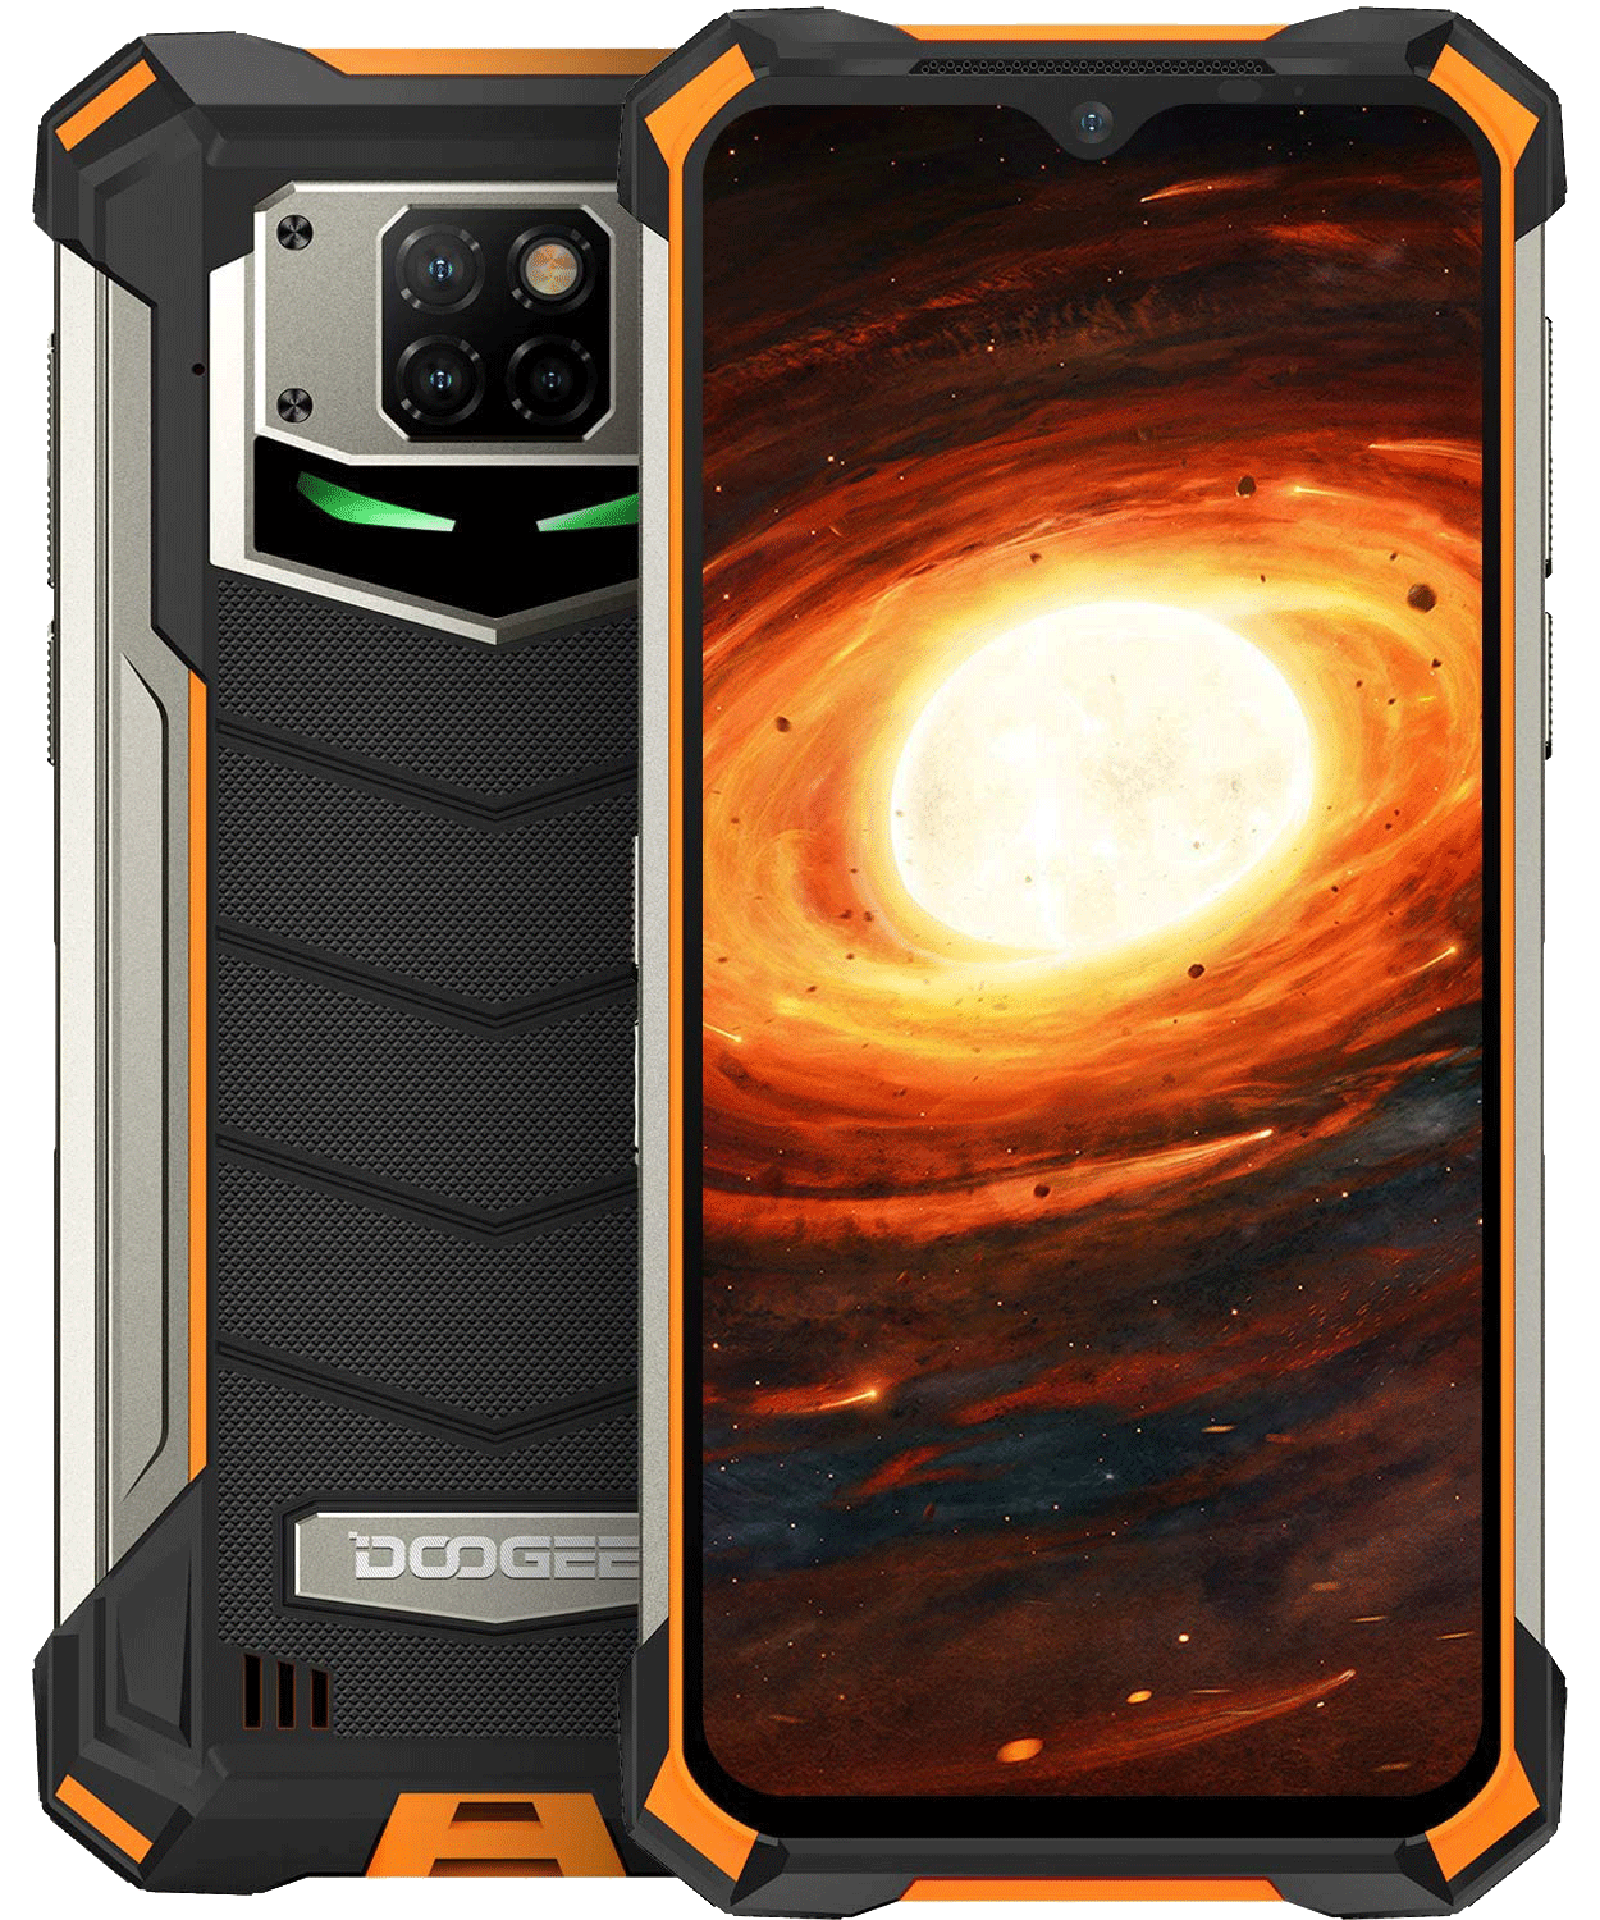 dogee s88 pro smartphone baustelle